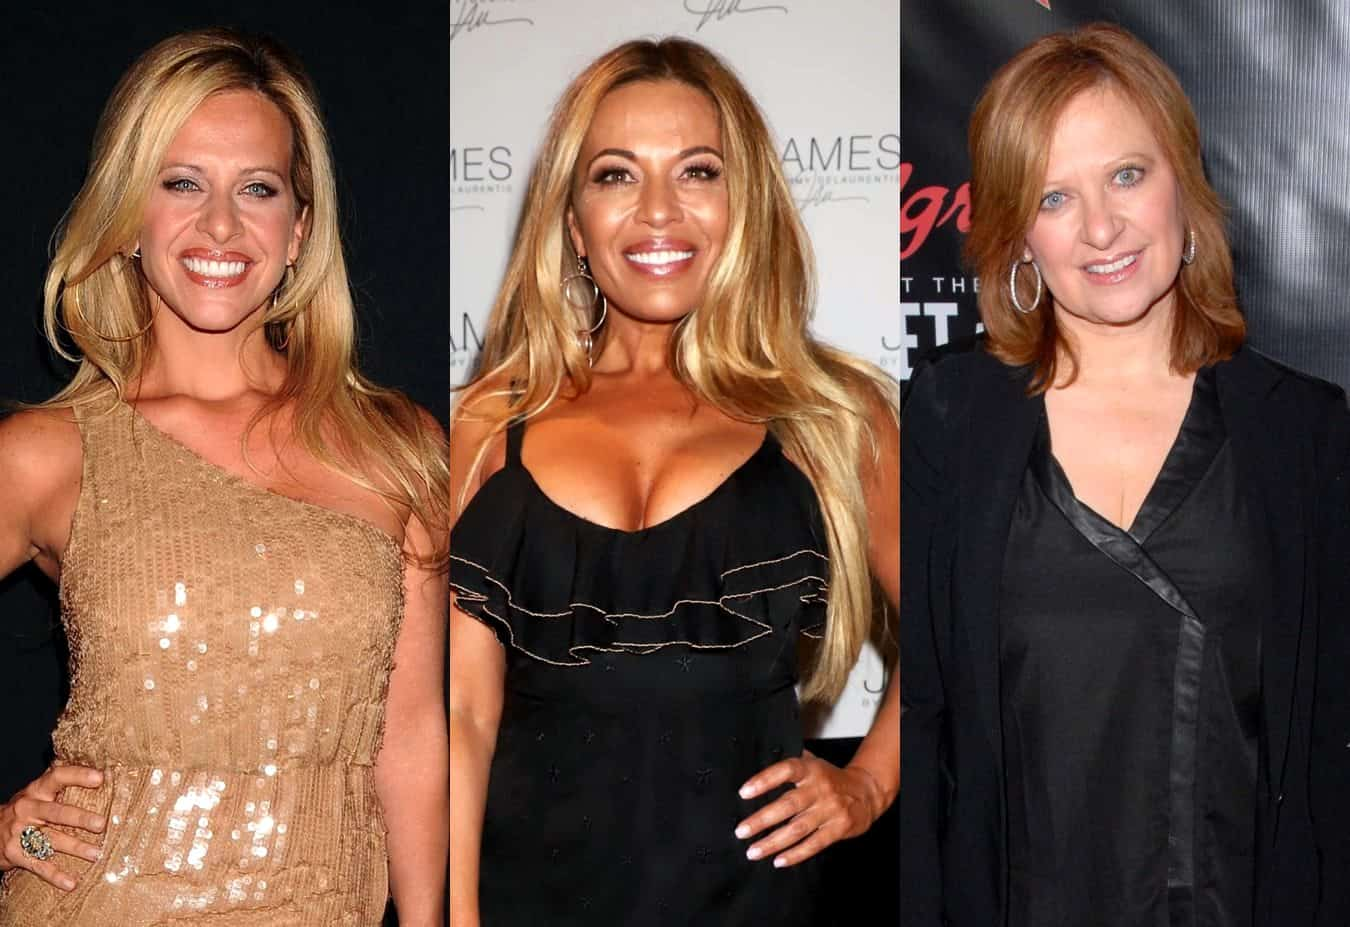 Dina Manzo Reveals Dolores Catania Was Supposed to Be on Season One of RHONJ But Was Replaced by Caroline Manzo After Backing Out